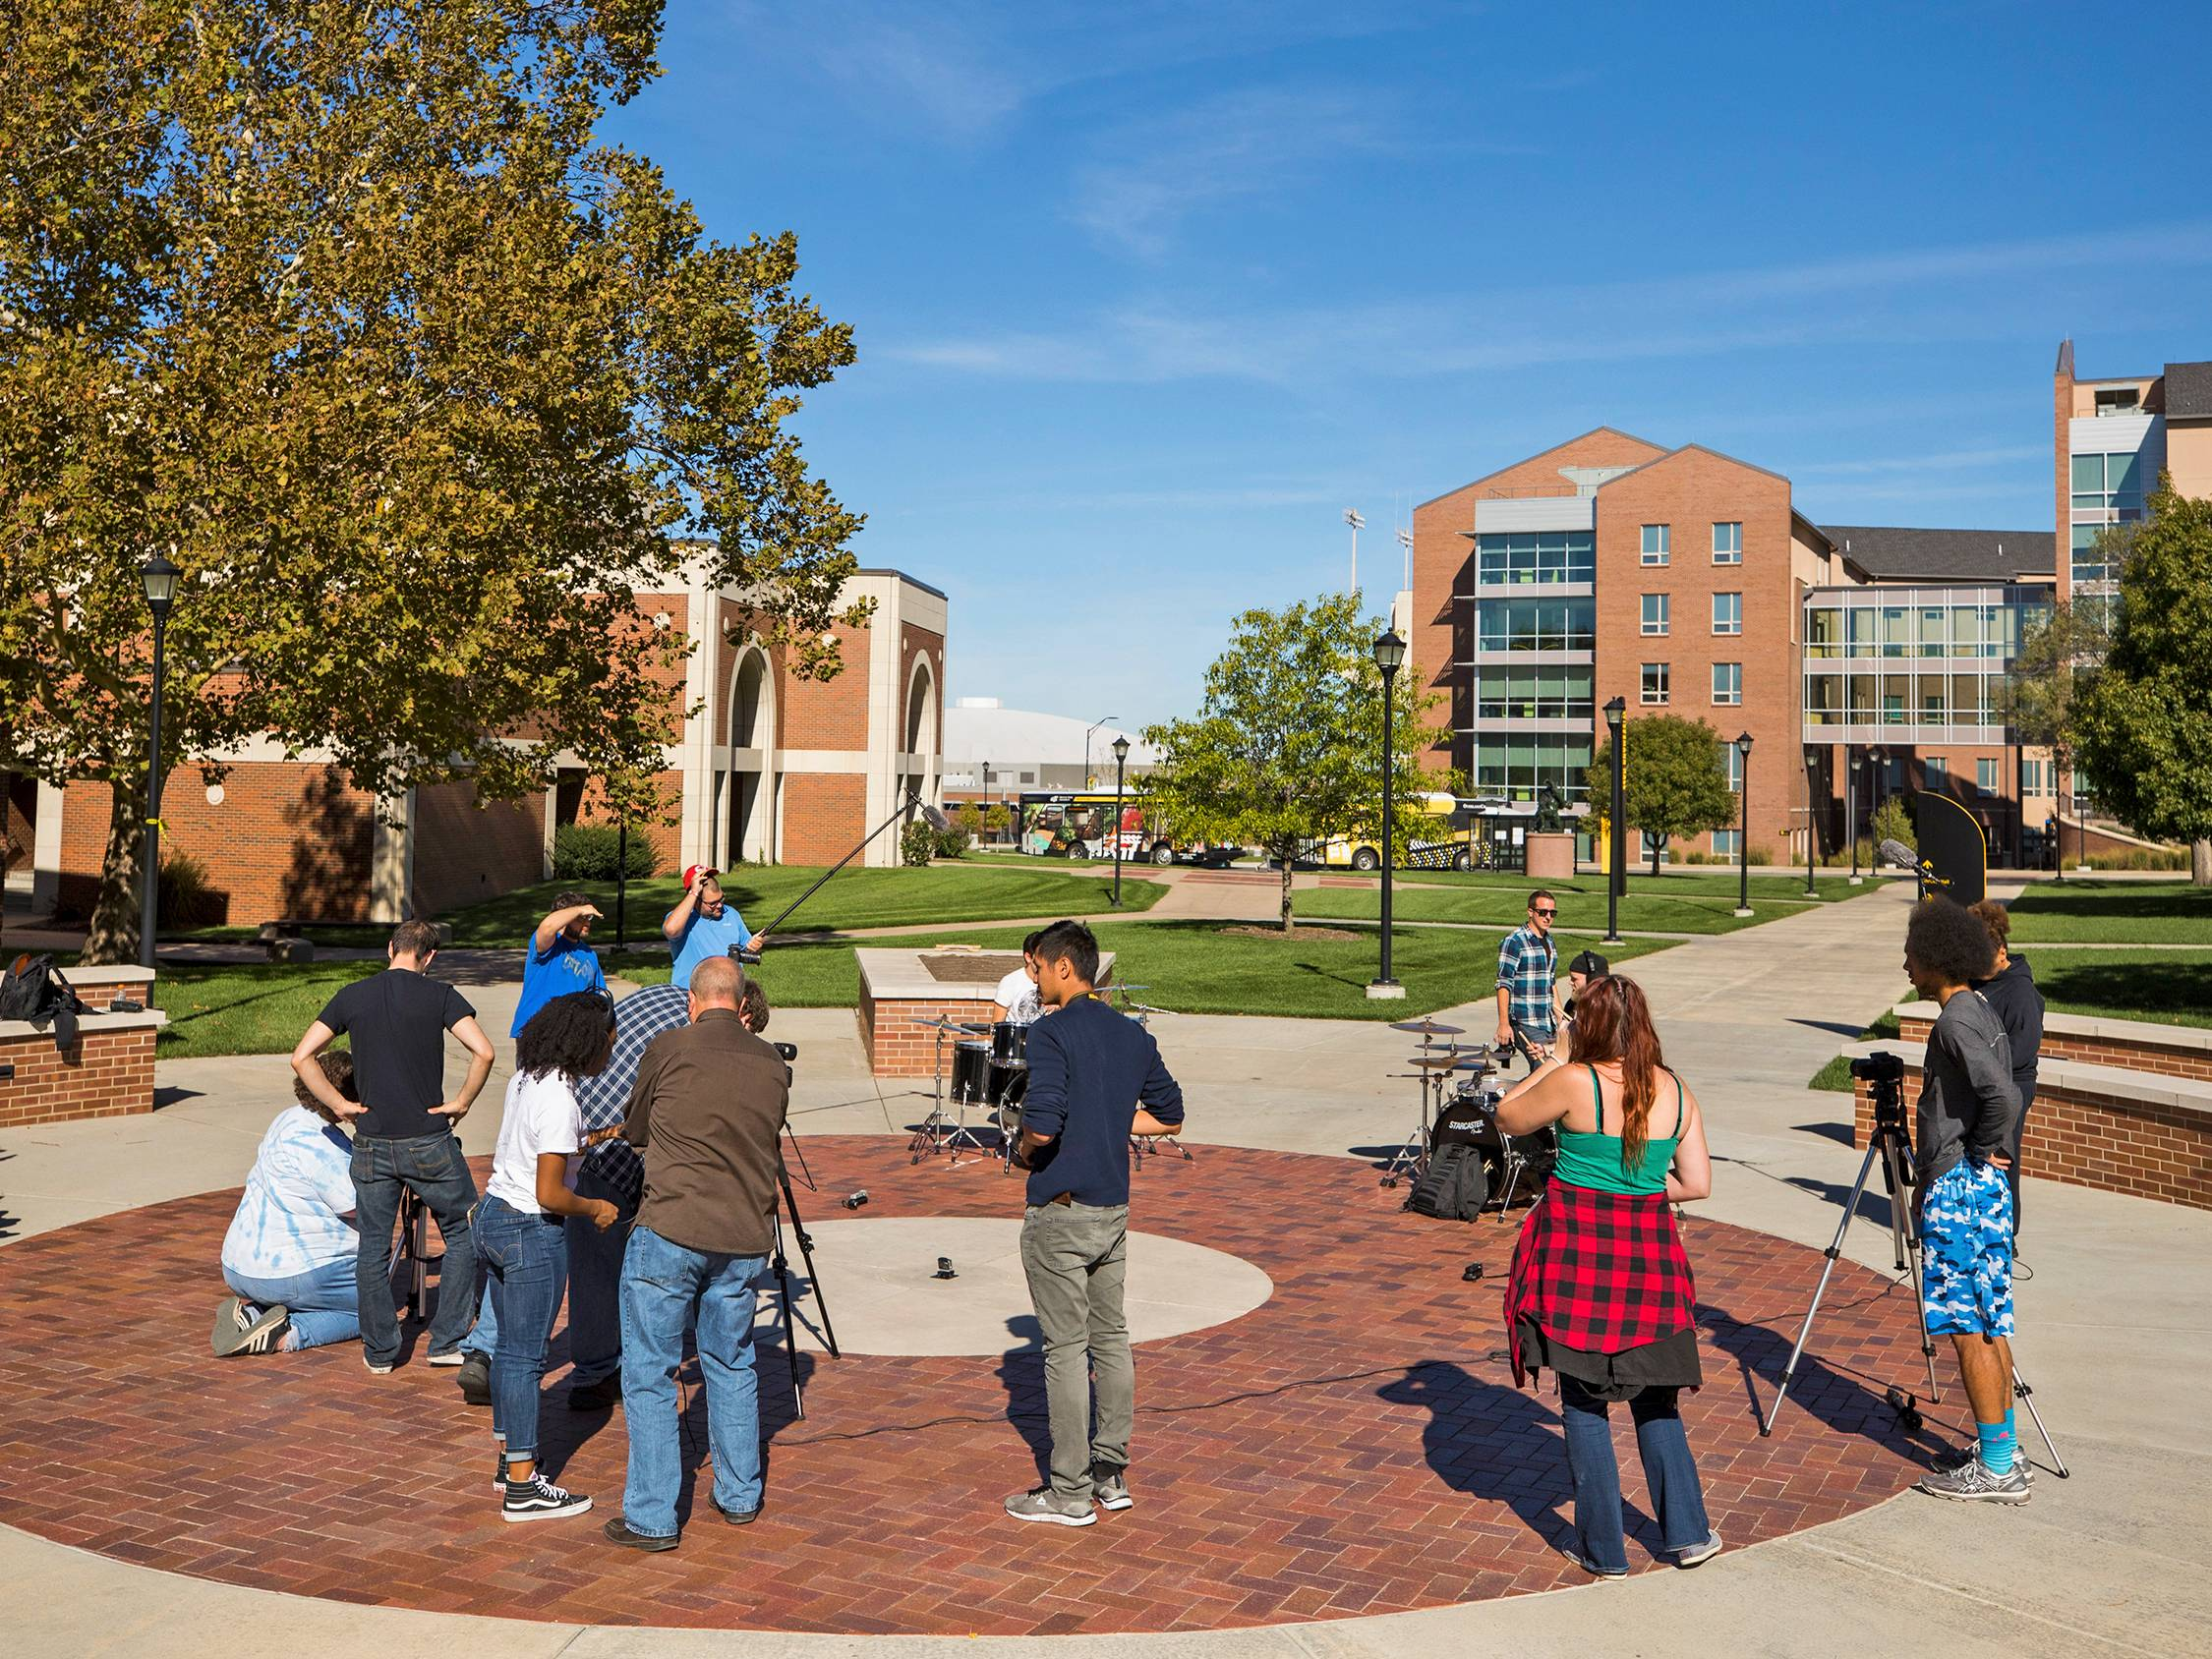 Fairmount college students taking video on campus